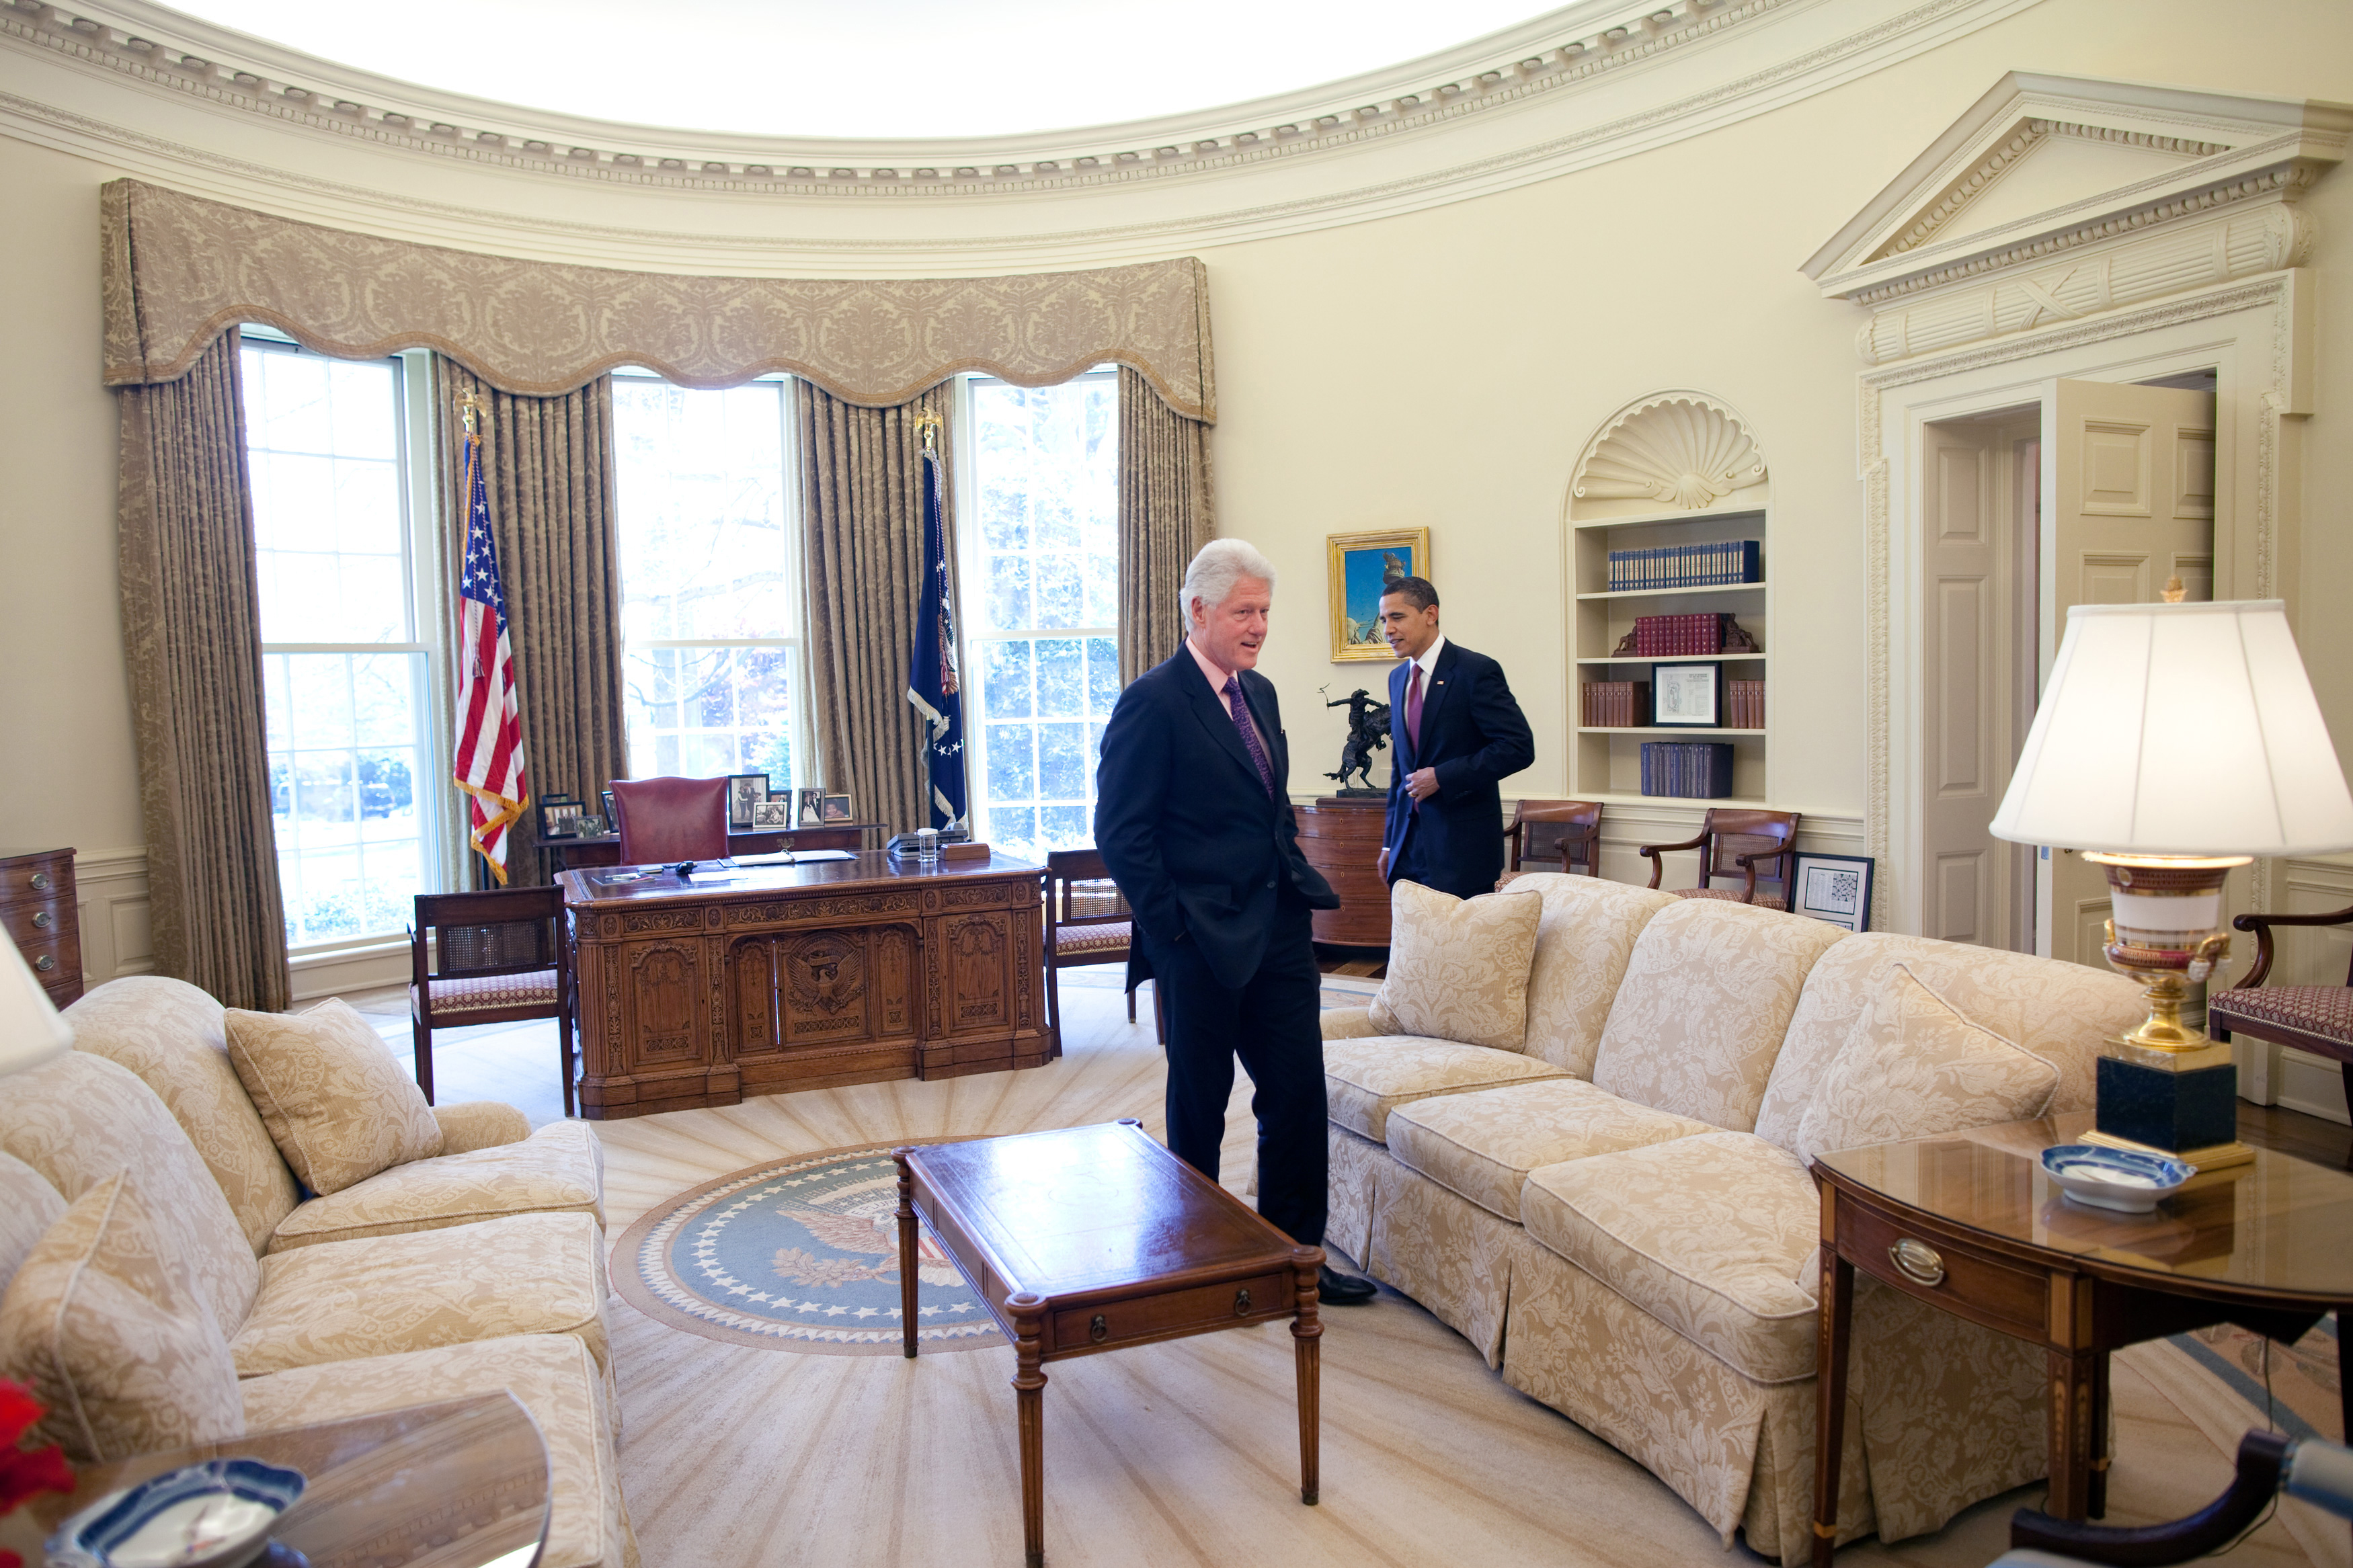 oval office picture. File:Barack Obama And Bill Clinton In The Oval Office.jpg Office Picture